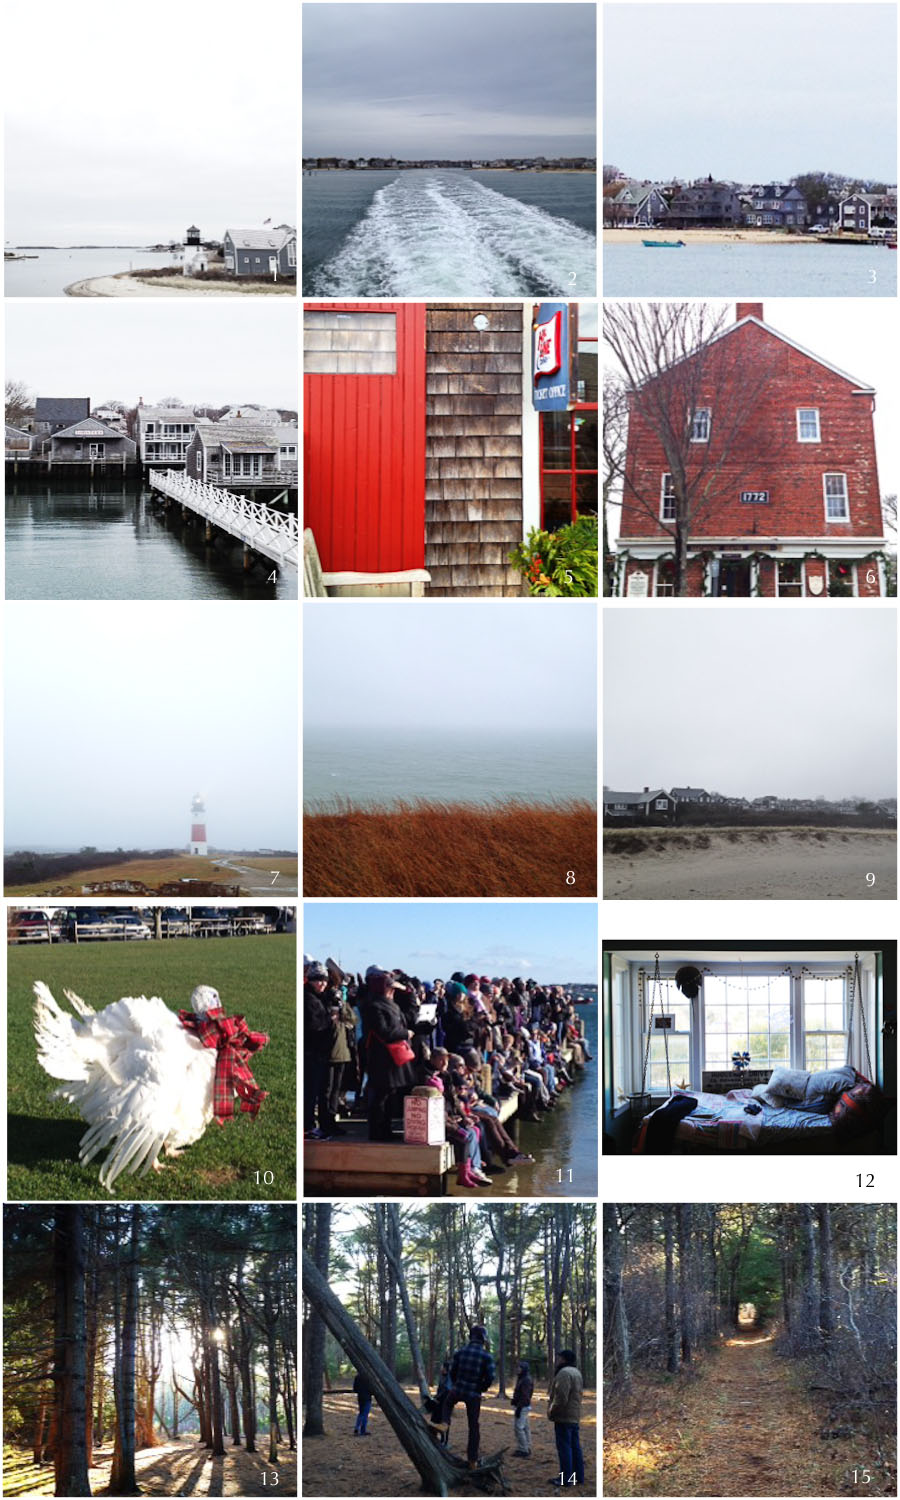 1. leaving hyannis | 2. (almost) open sea | 3. blue boat | 4. arrive | 5. cheery ticket office | 6. rare brick building | 7. sankaty light | 8. fog-shrouded sea | 9. cisco beach | 10. cold turkey plunge | 11. spectators (wise) | 11. cozy nook | 12. state forest | 14. active young men (and Neel!) | 15. long walk